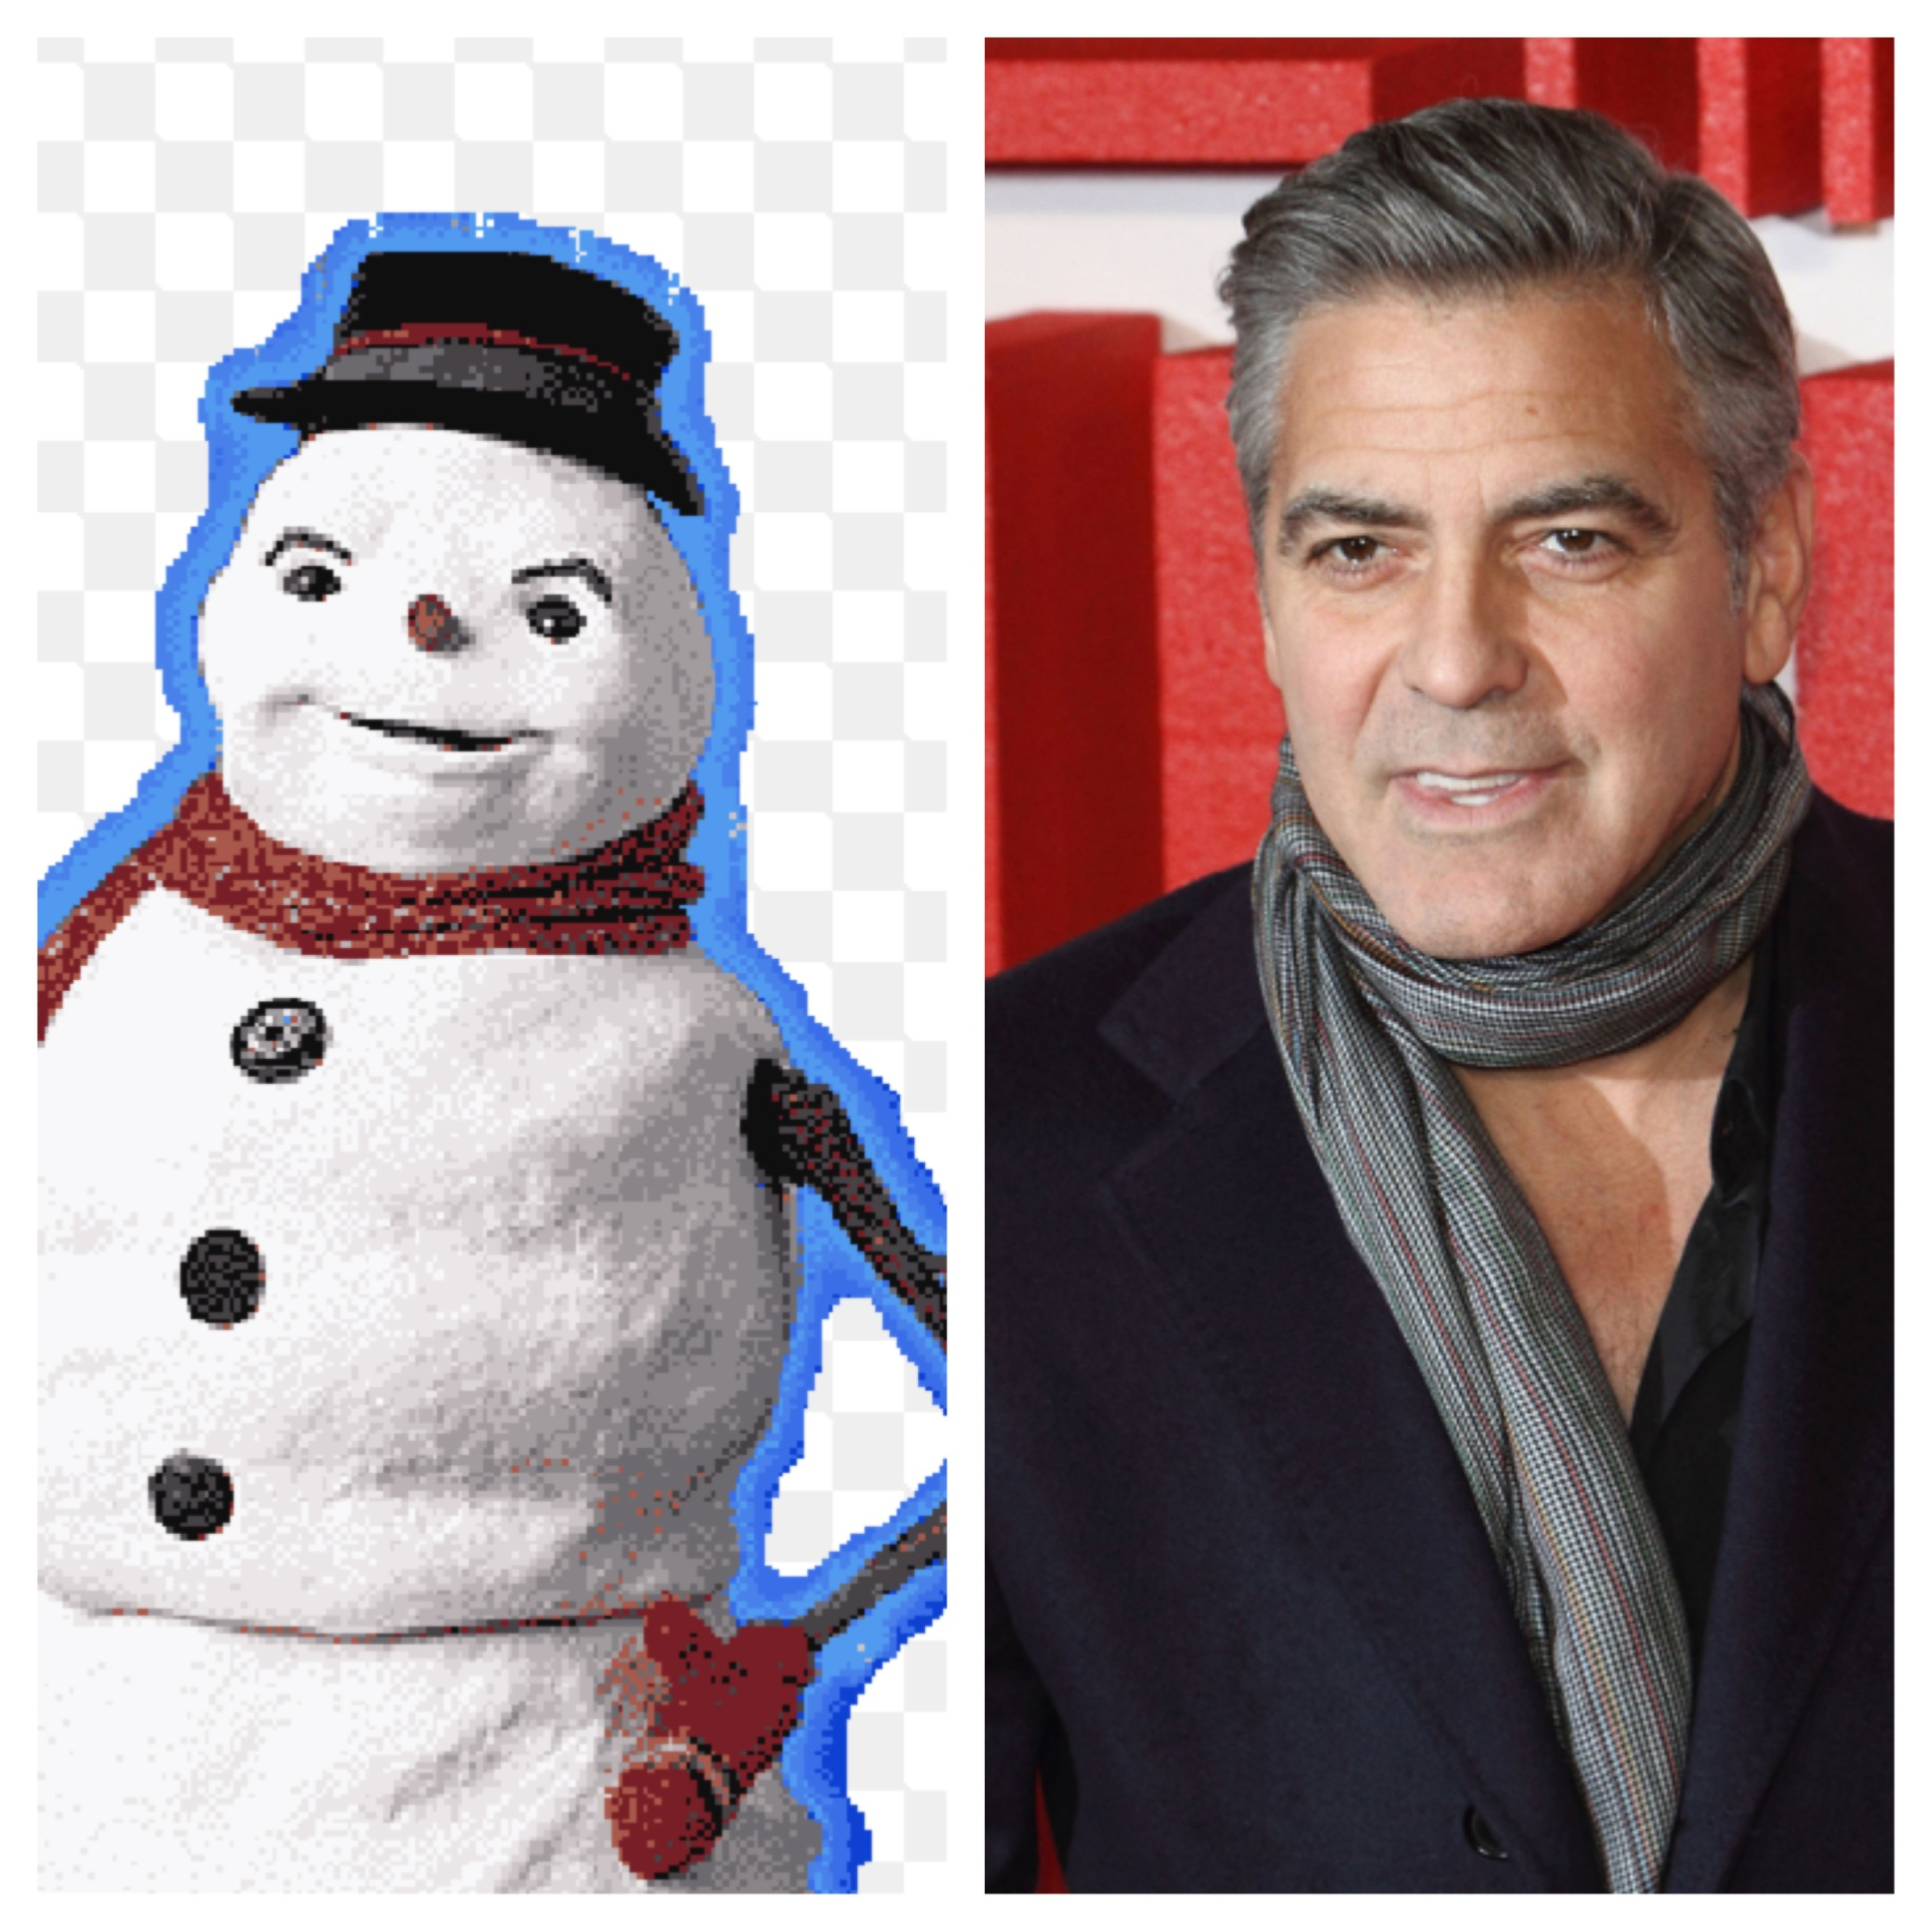 The snowmanjack frost mr freeze frosty andwhy the fuck not the essential question did they change the snowman costume after clooney was off board one blogger says yes clooney leaving the project caused headaches solutioingenieria Choice Image